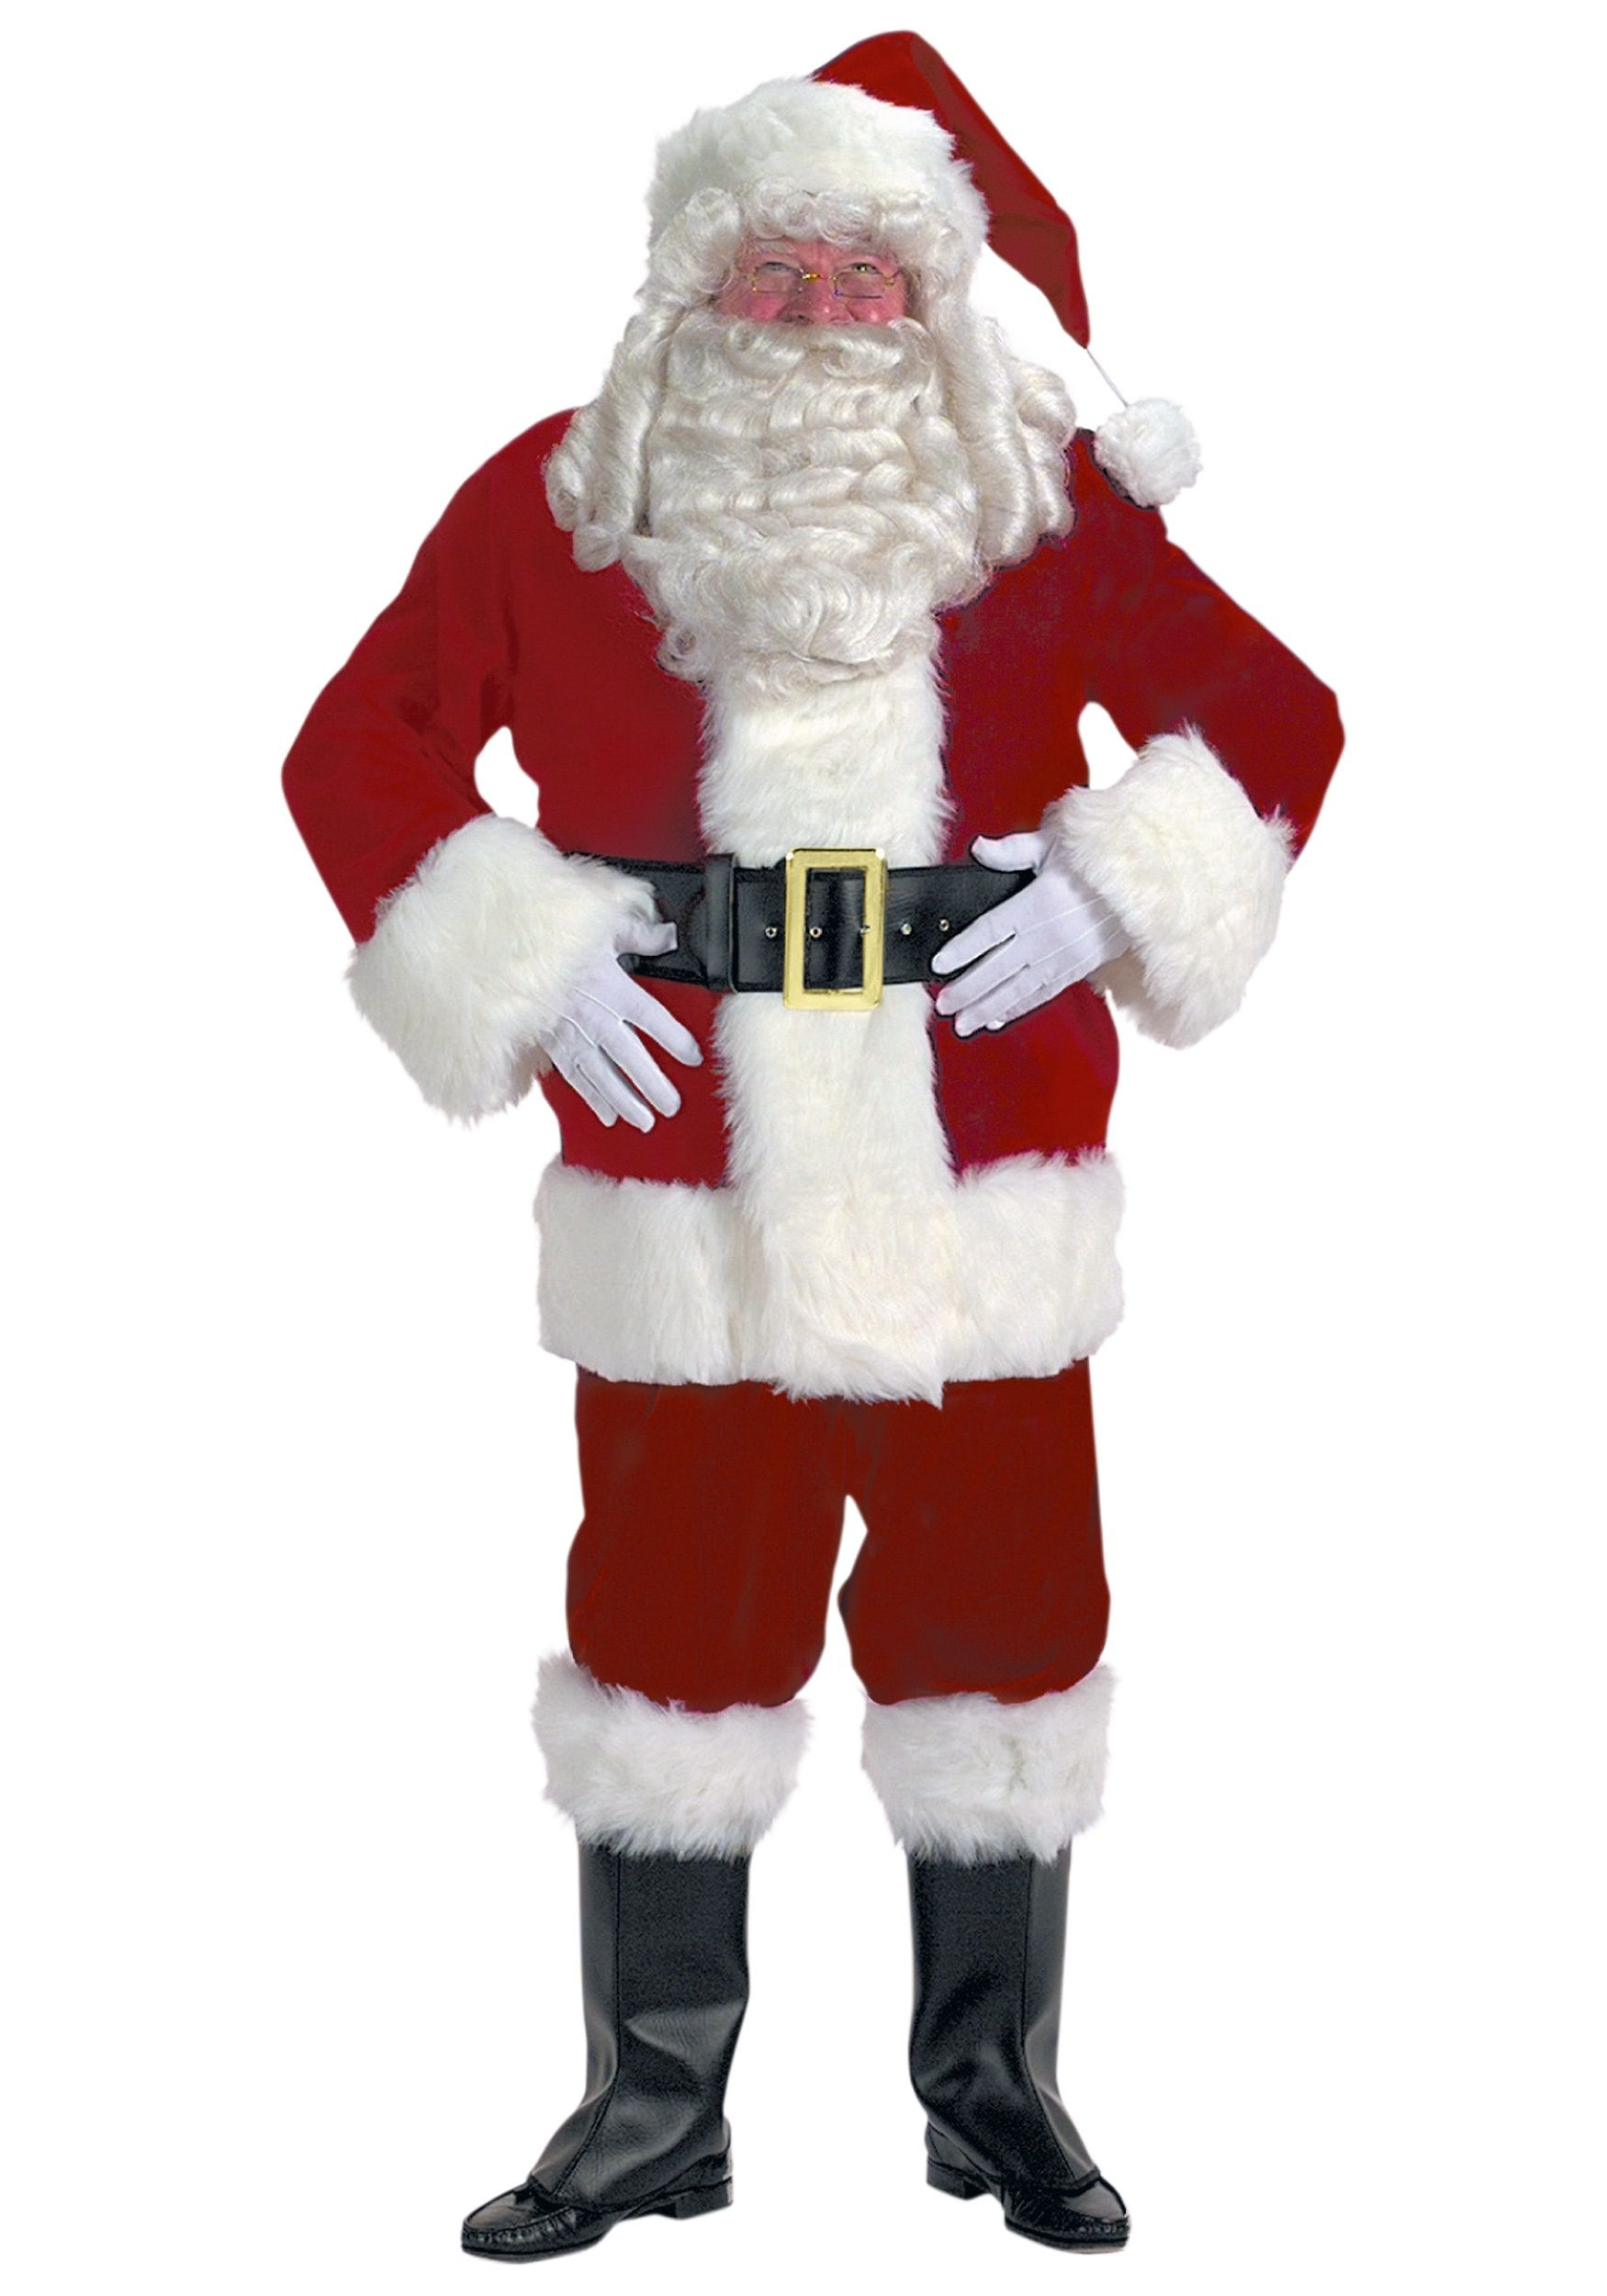 xxl professional velvet santa claus suit from master halco comes with a zipper coat with sleeve cuffs and belt loops pants with side pockets - Santa Santa Claus